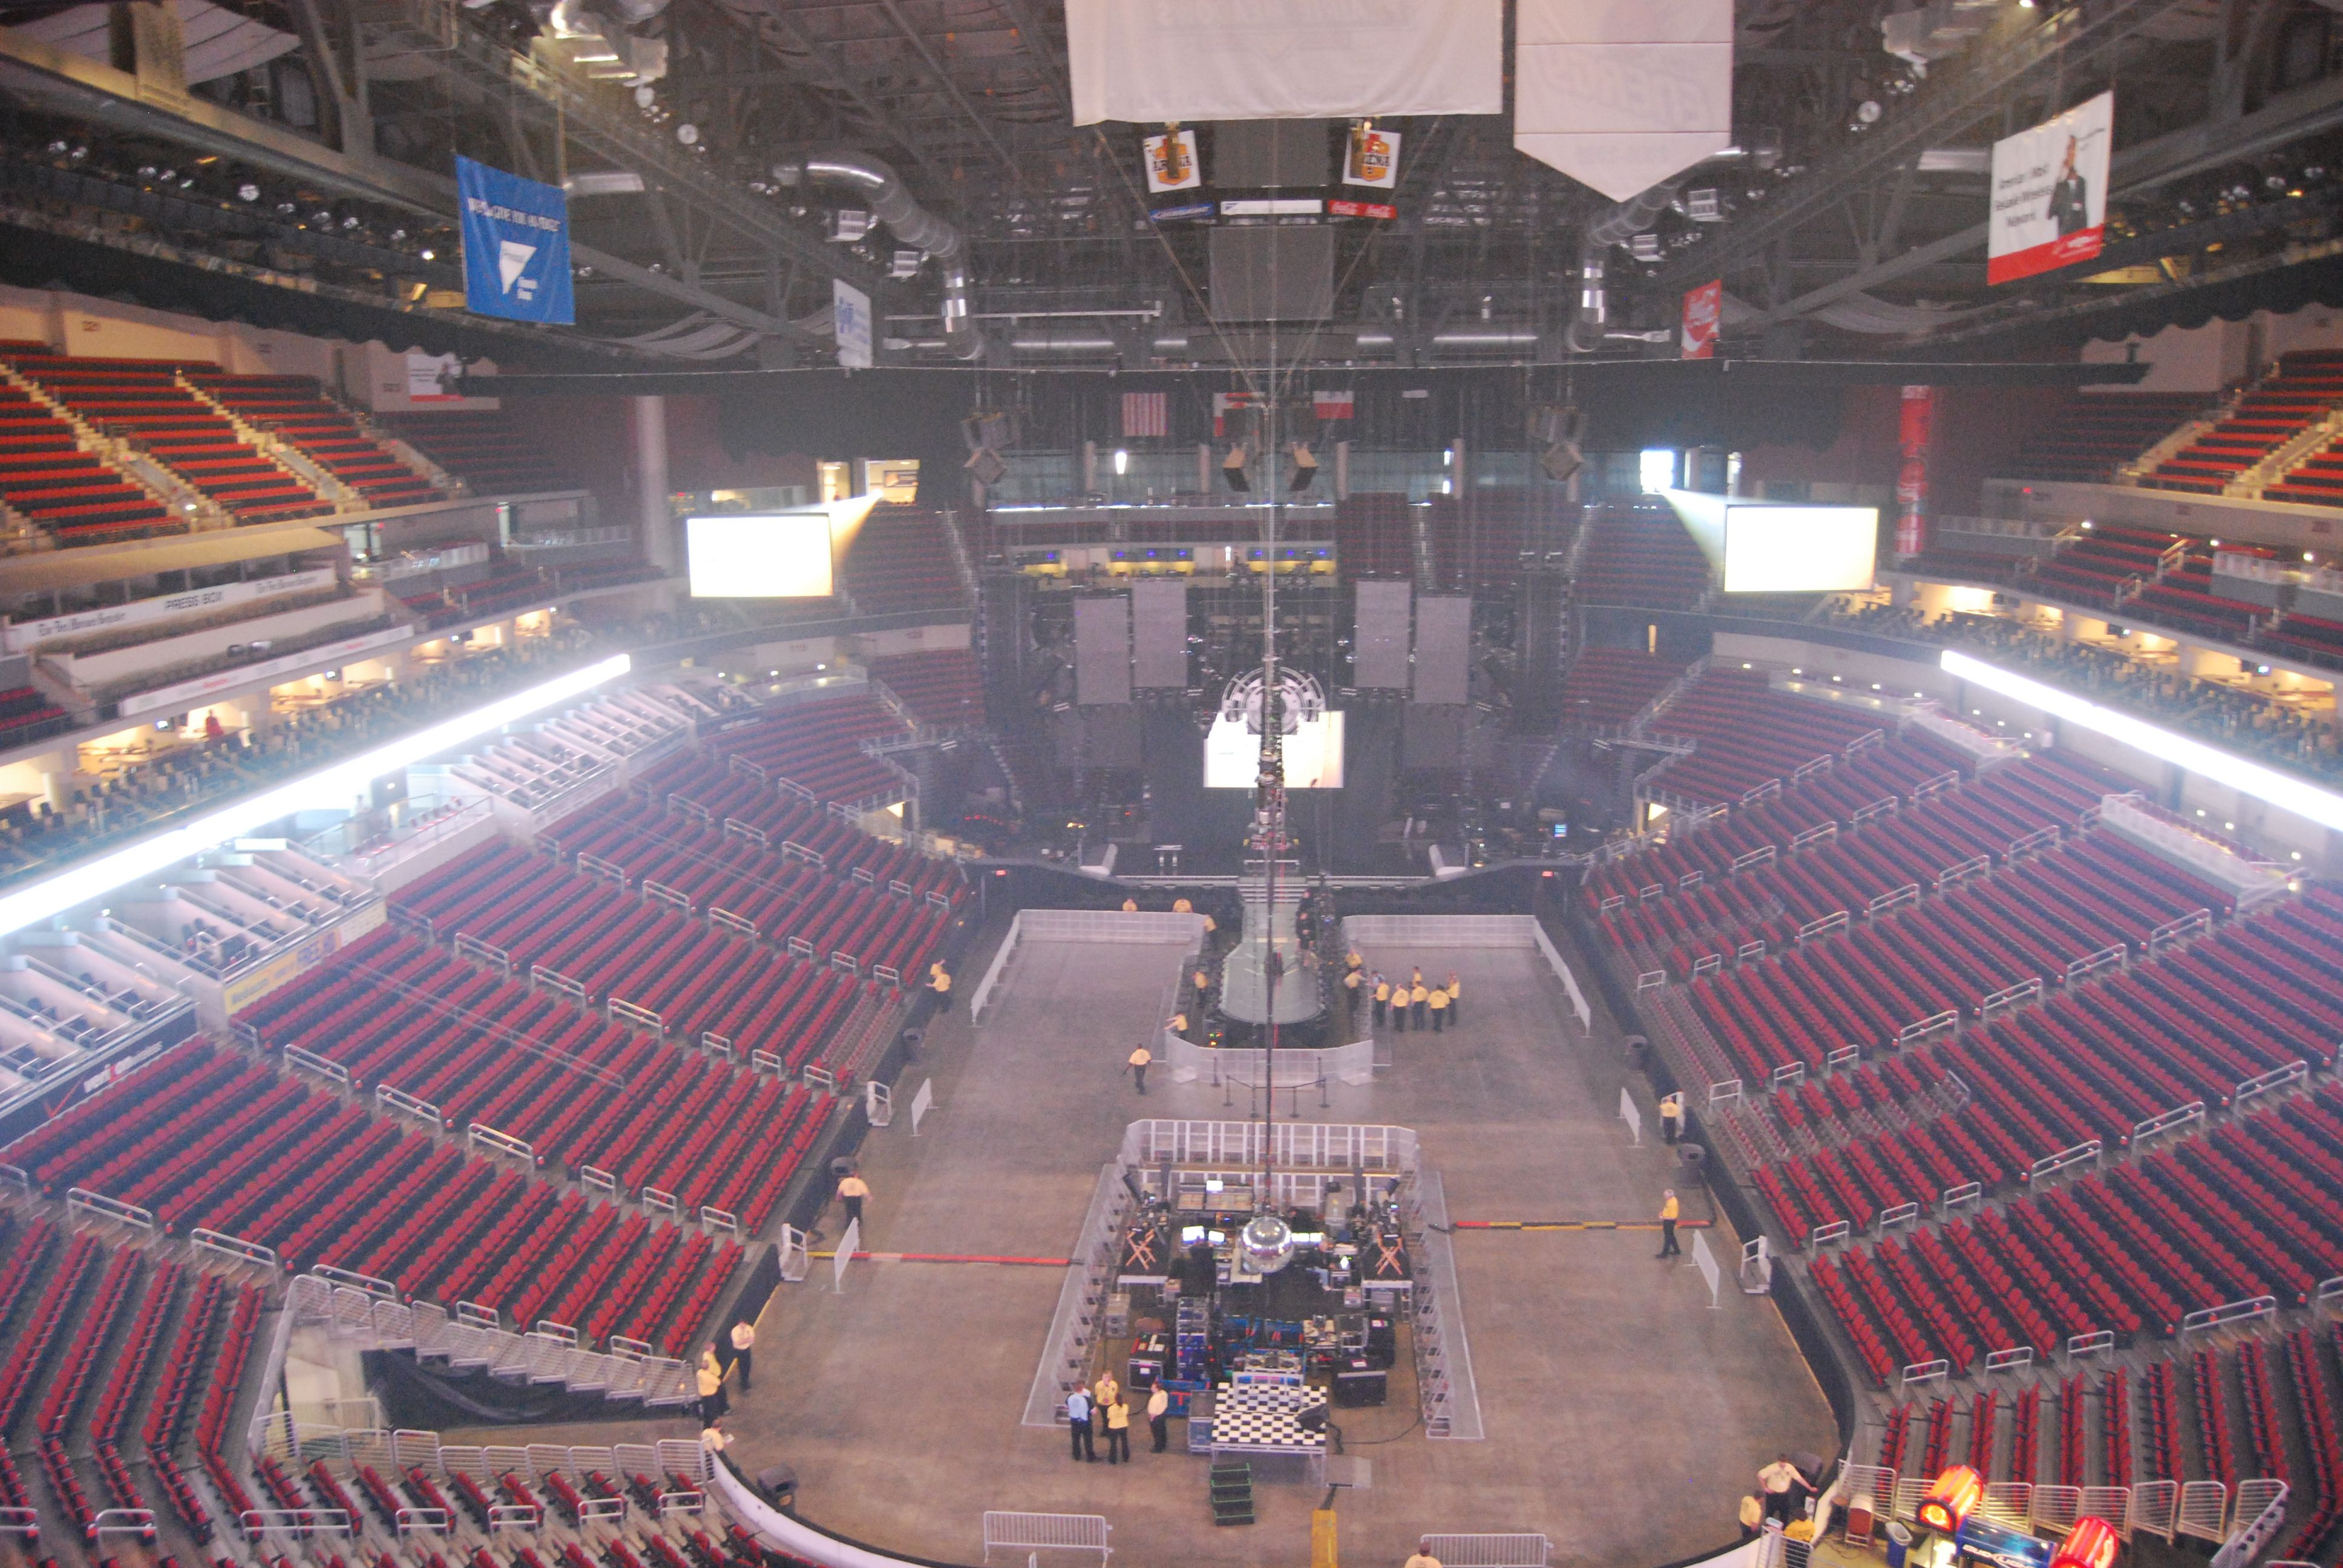 Open Floor At Wells Fargo Arena Concert Red Tour Best Night Ever Im Awesome